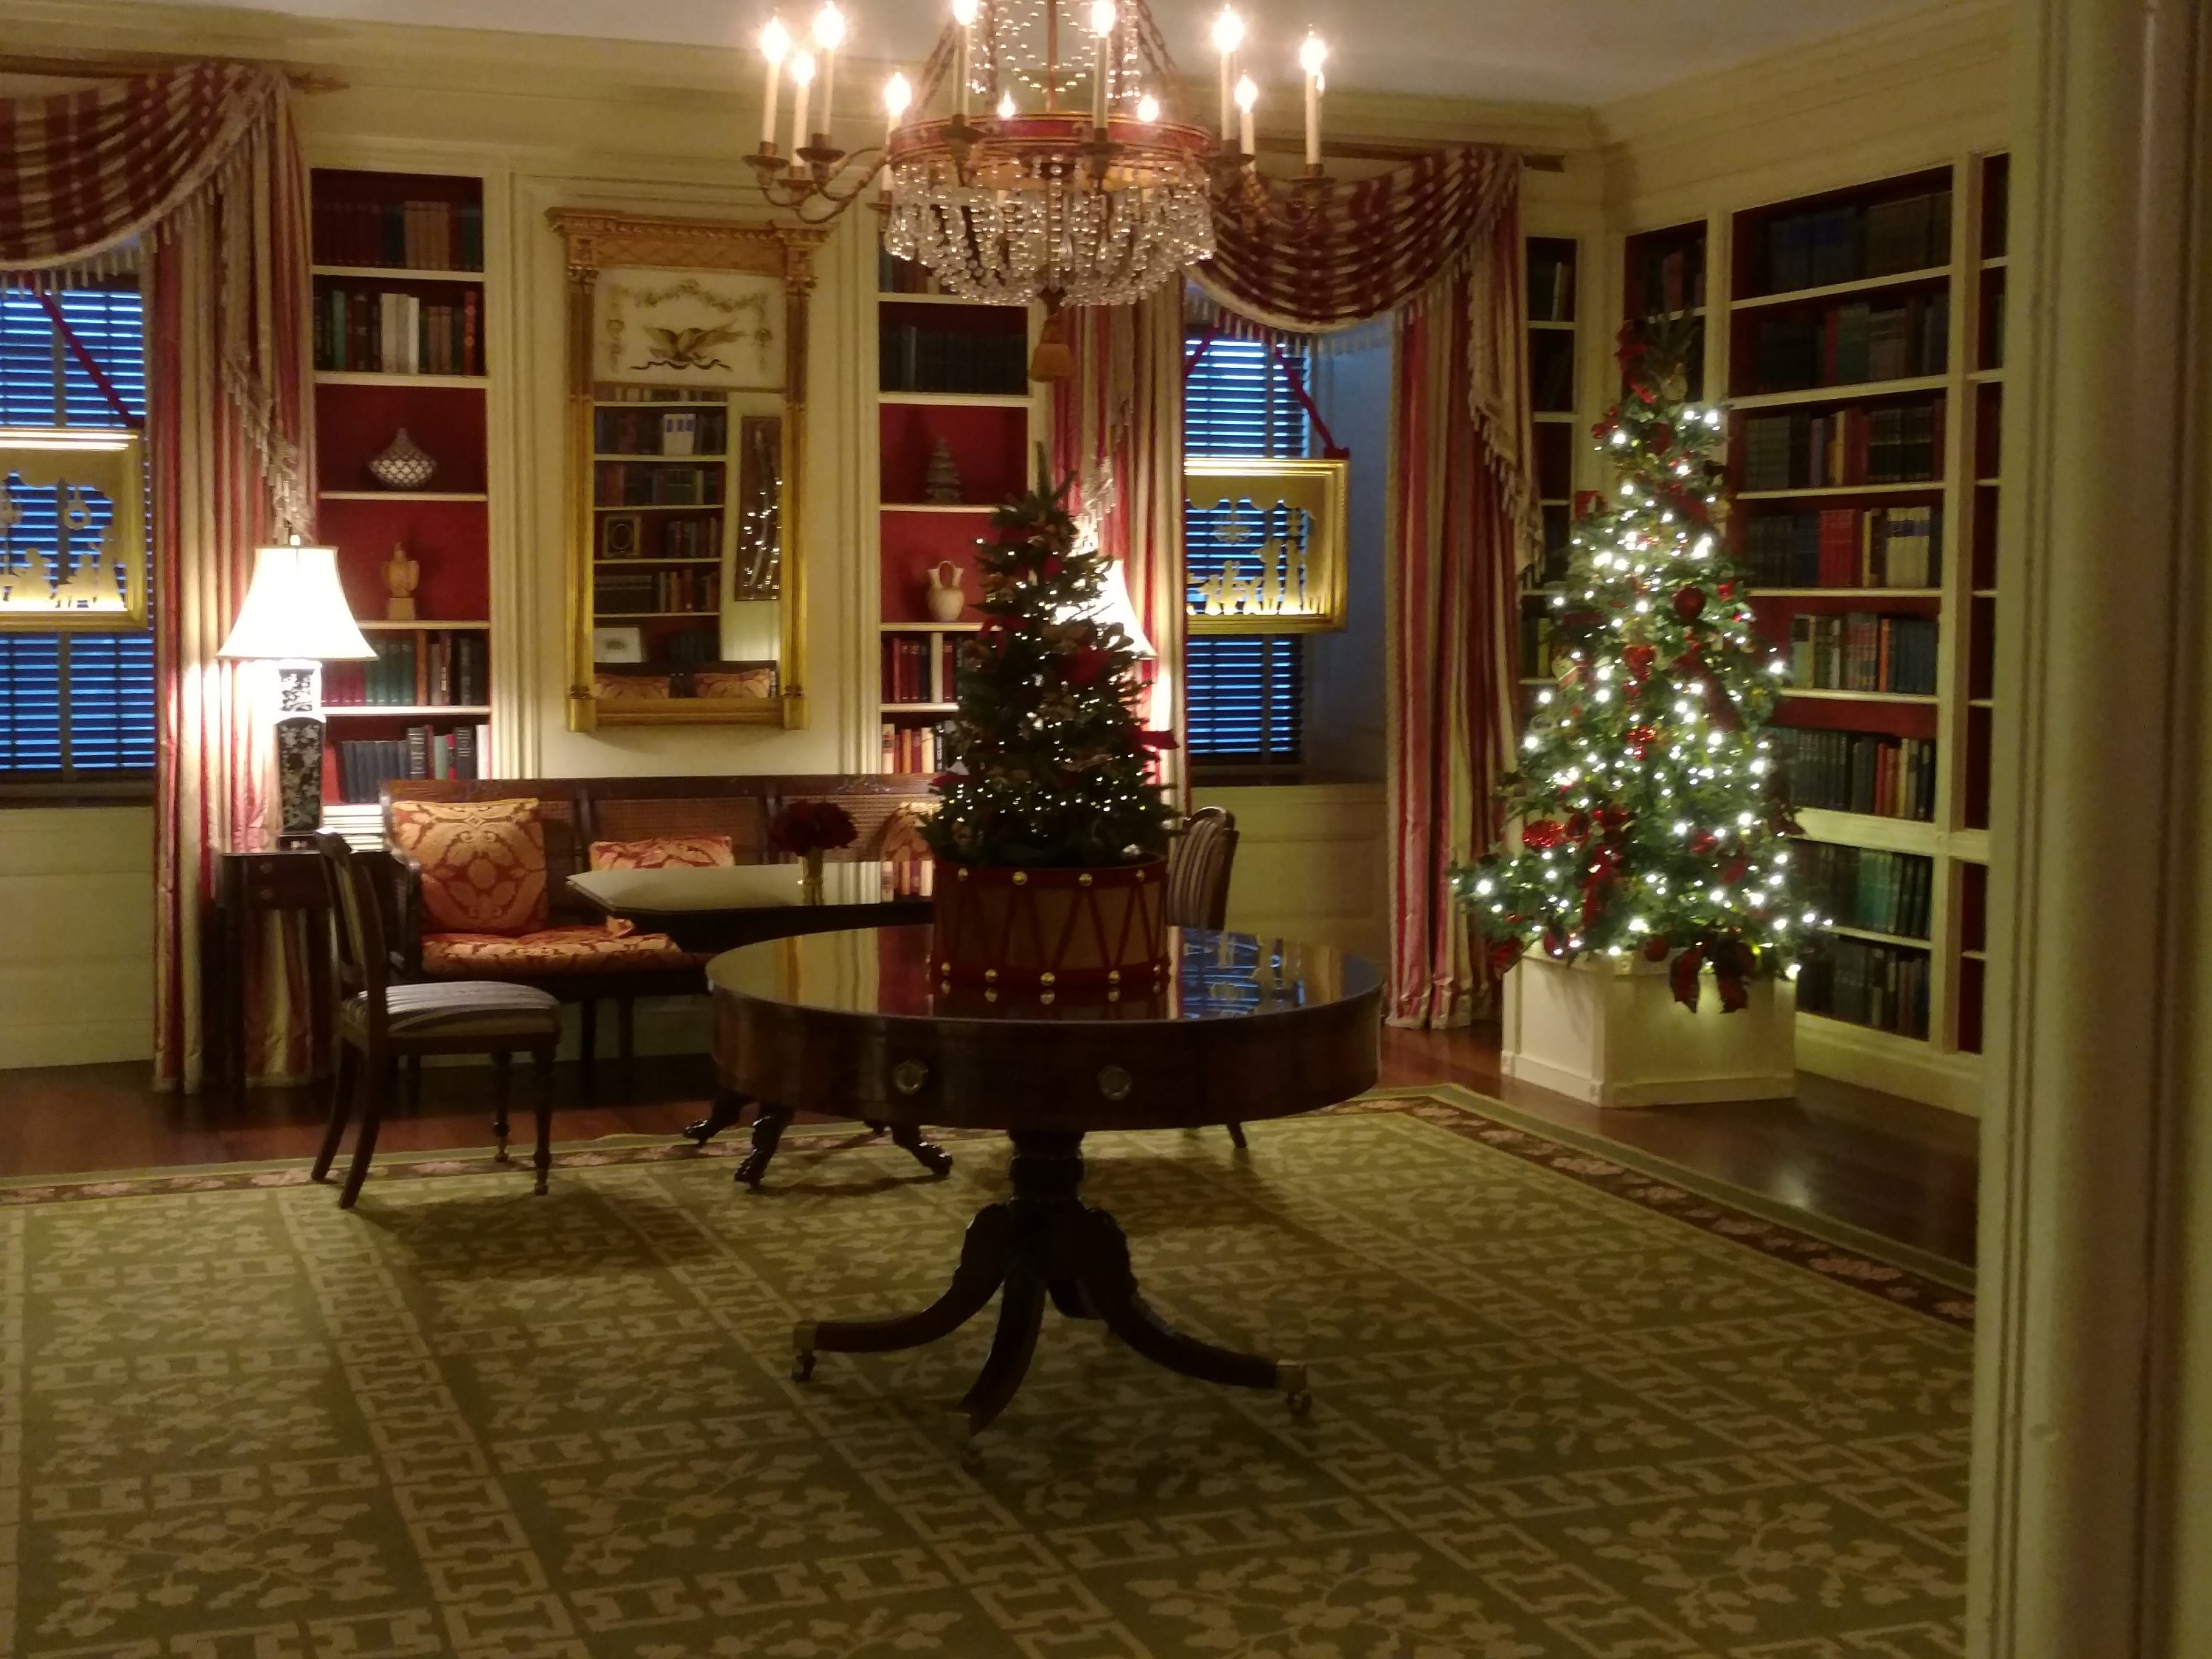 The White House library's Christmas look